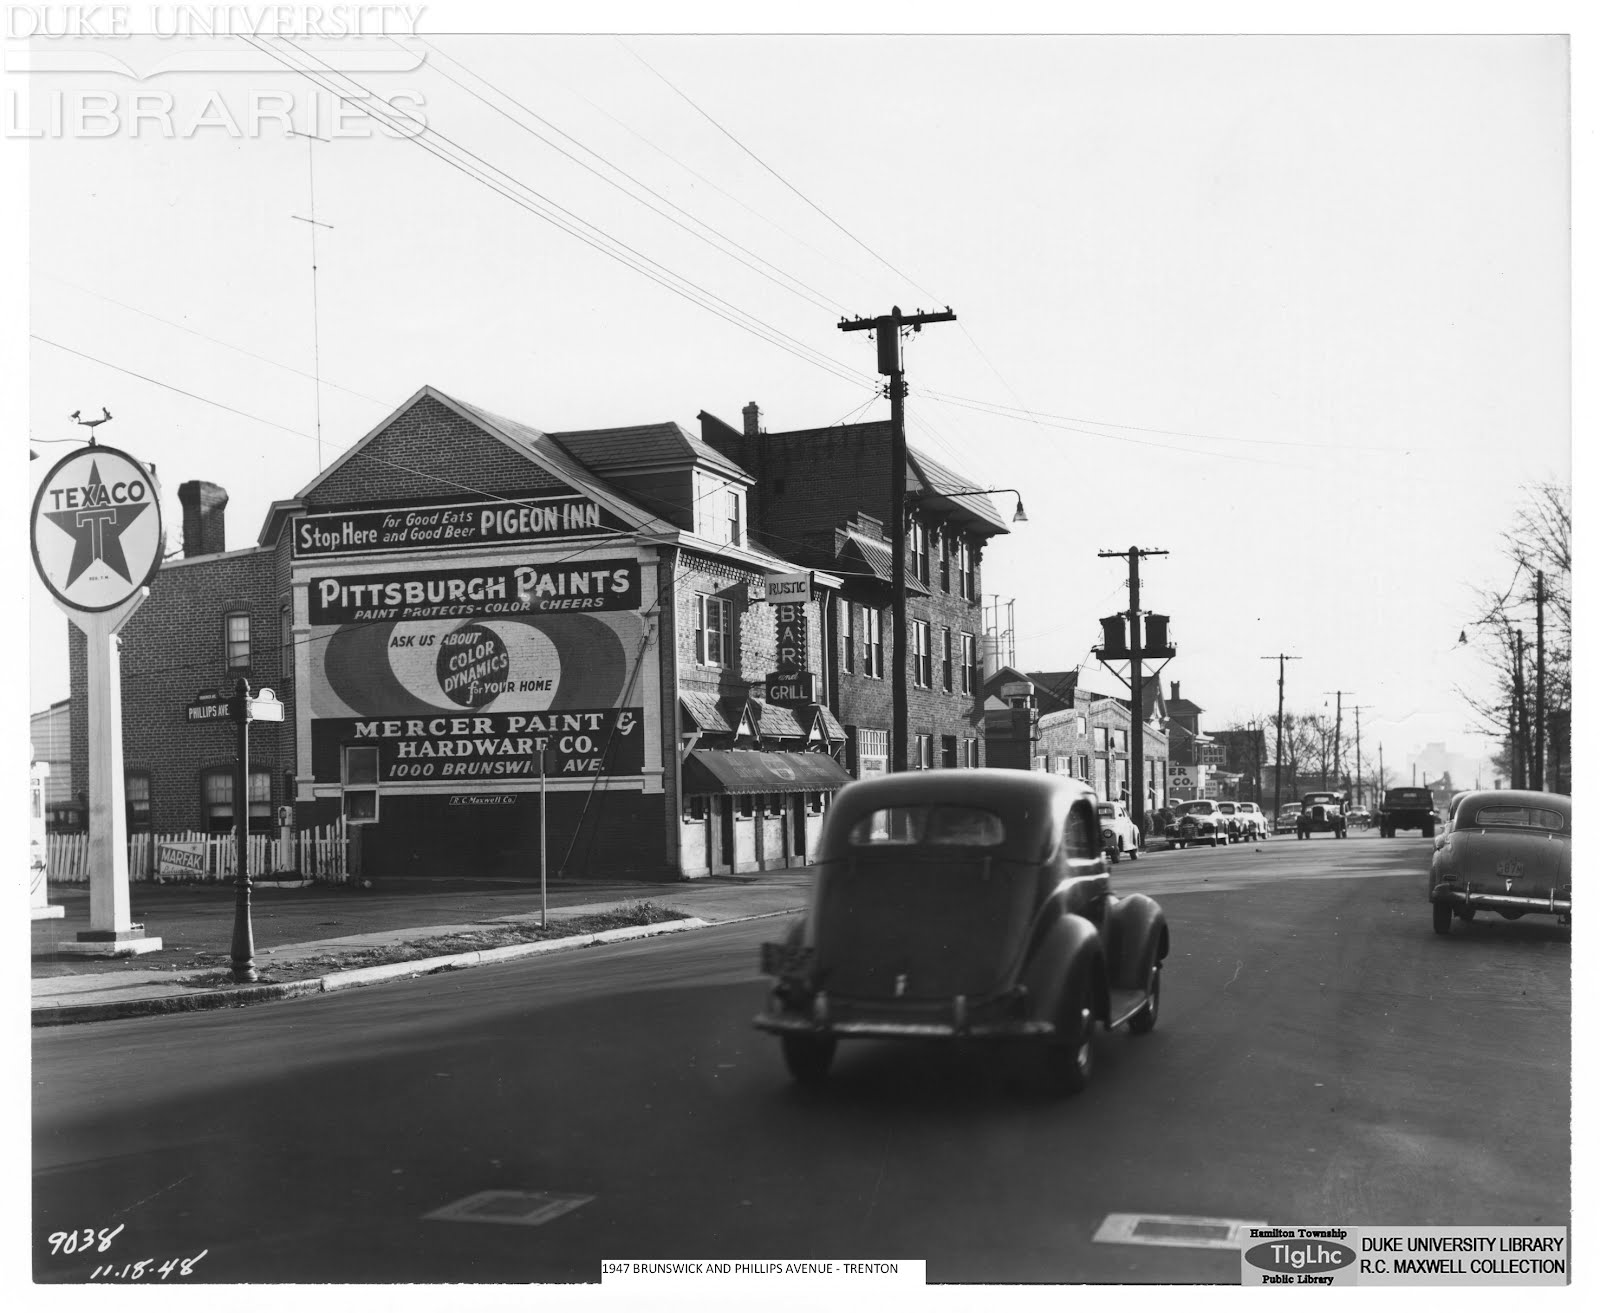 Barber Shop Hamilton Nj : TOM GLOVERS HAMILTON LIBRARY SCRAPBOOK: LOCAL HISTORY WITH A PERSONAL ...